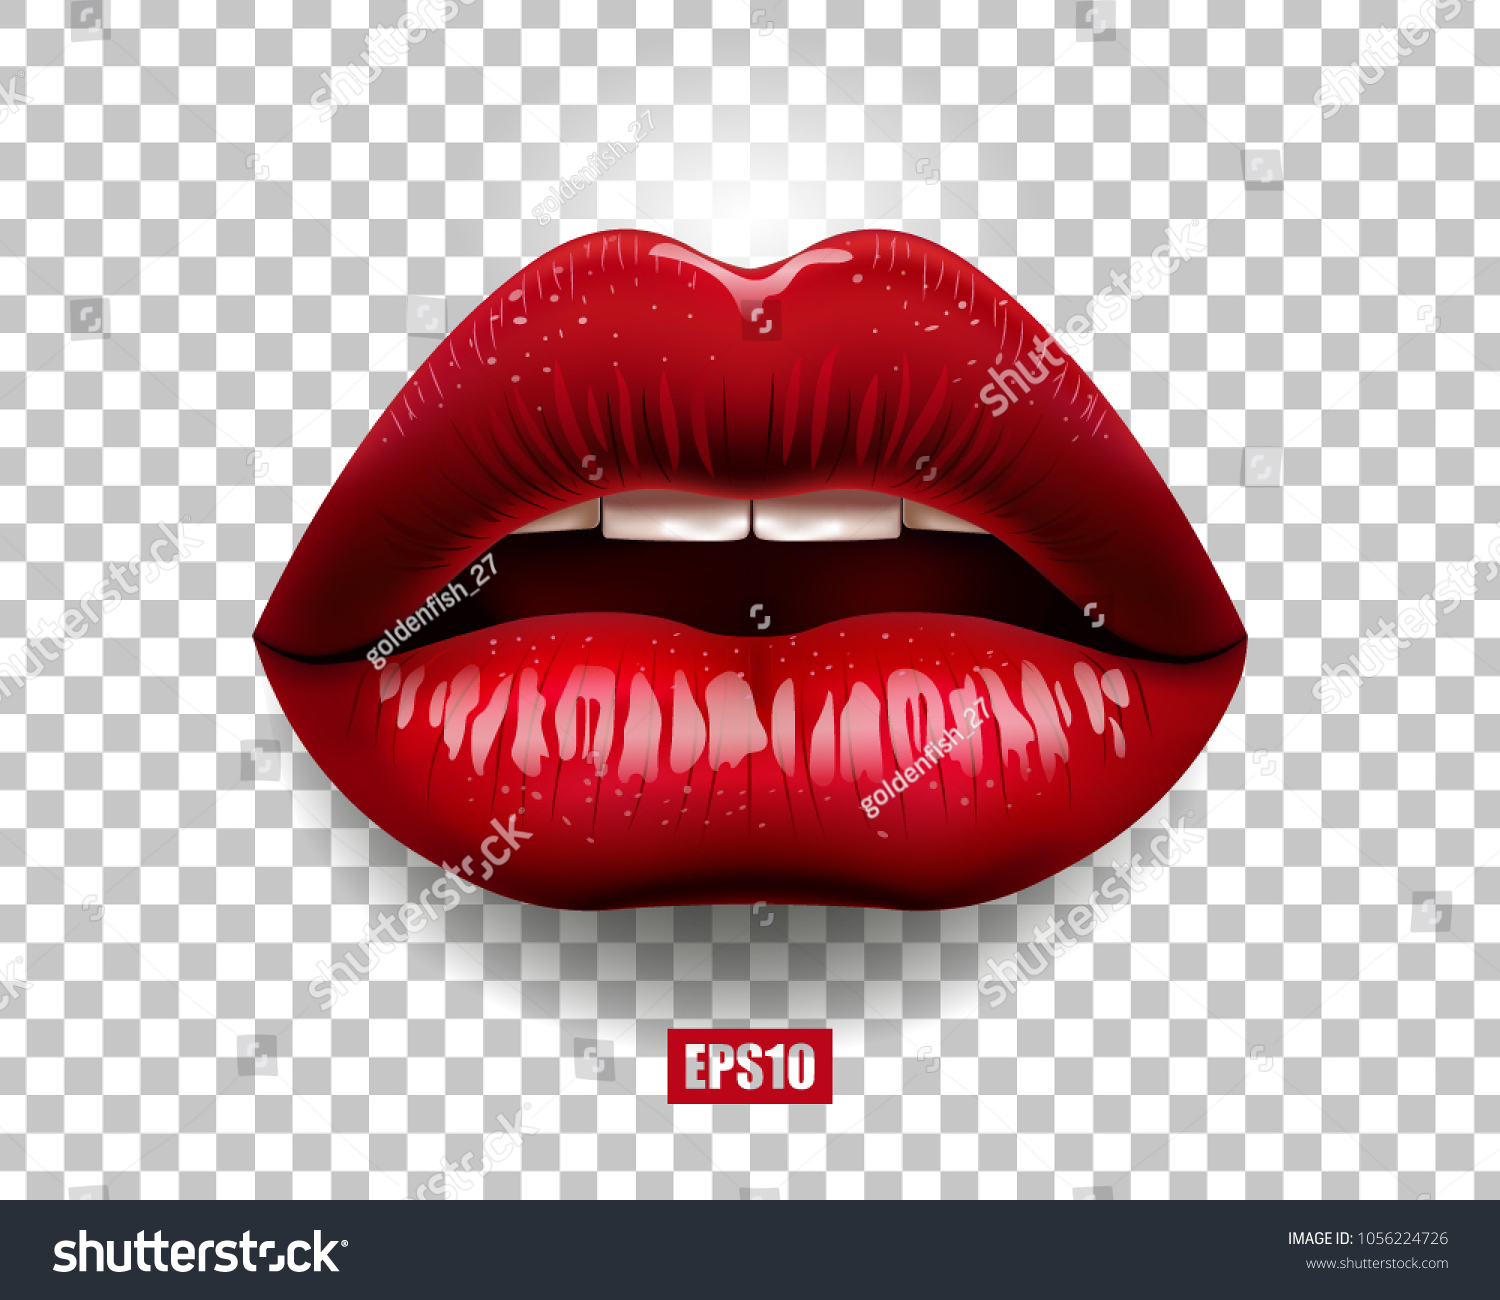 Sexy red lips isolated on transparent background. 3D design. Vector illustration.